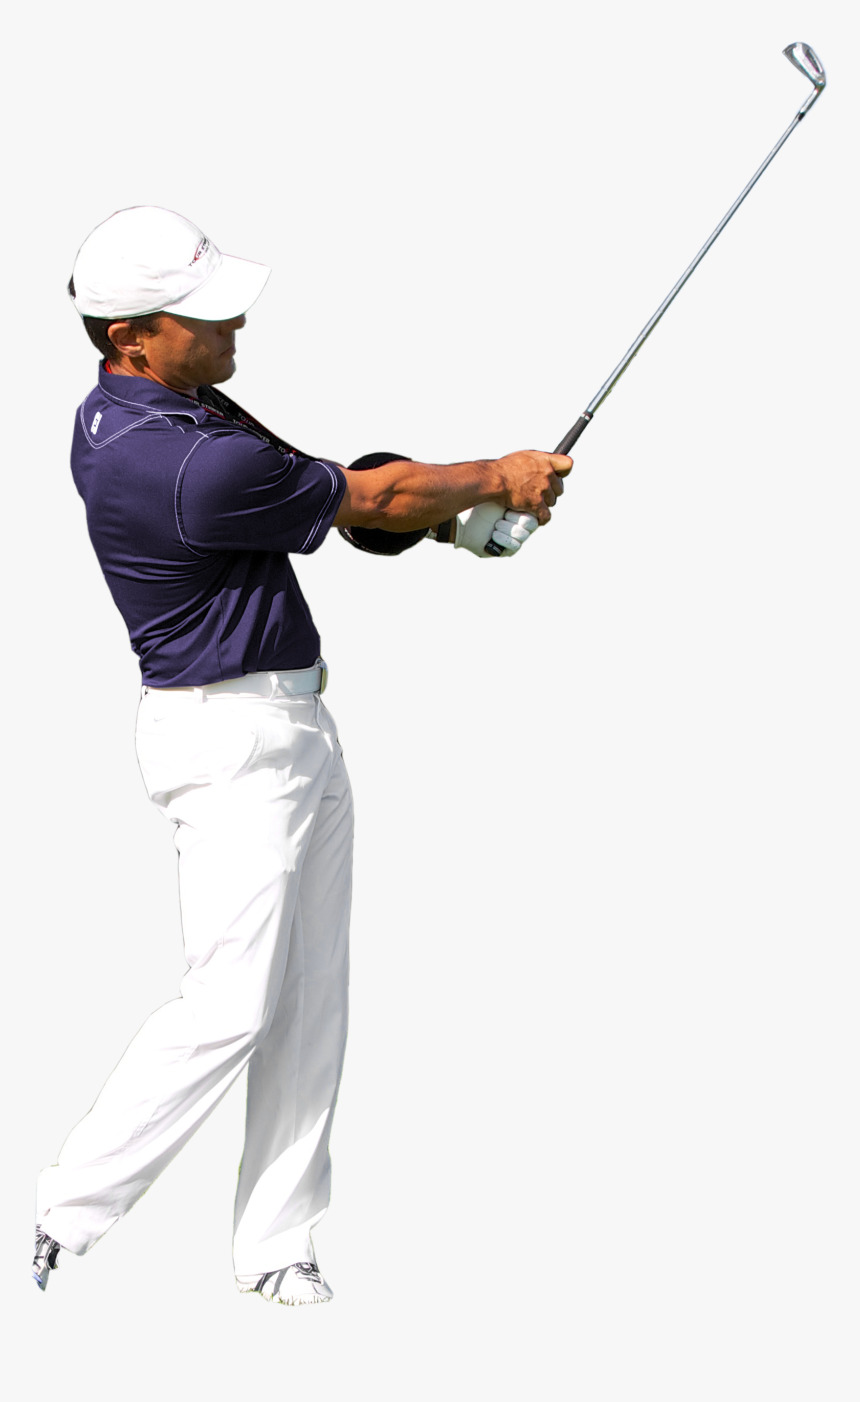 Tour Striker Smart Ball As Used By Pga Tour Players - Golf, HD Png Download, Free Download